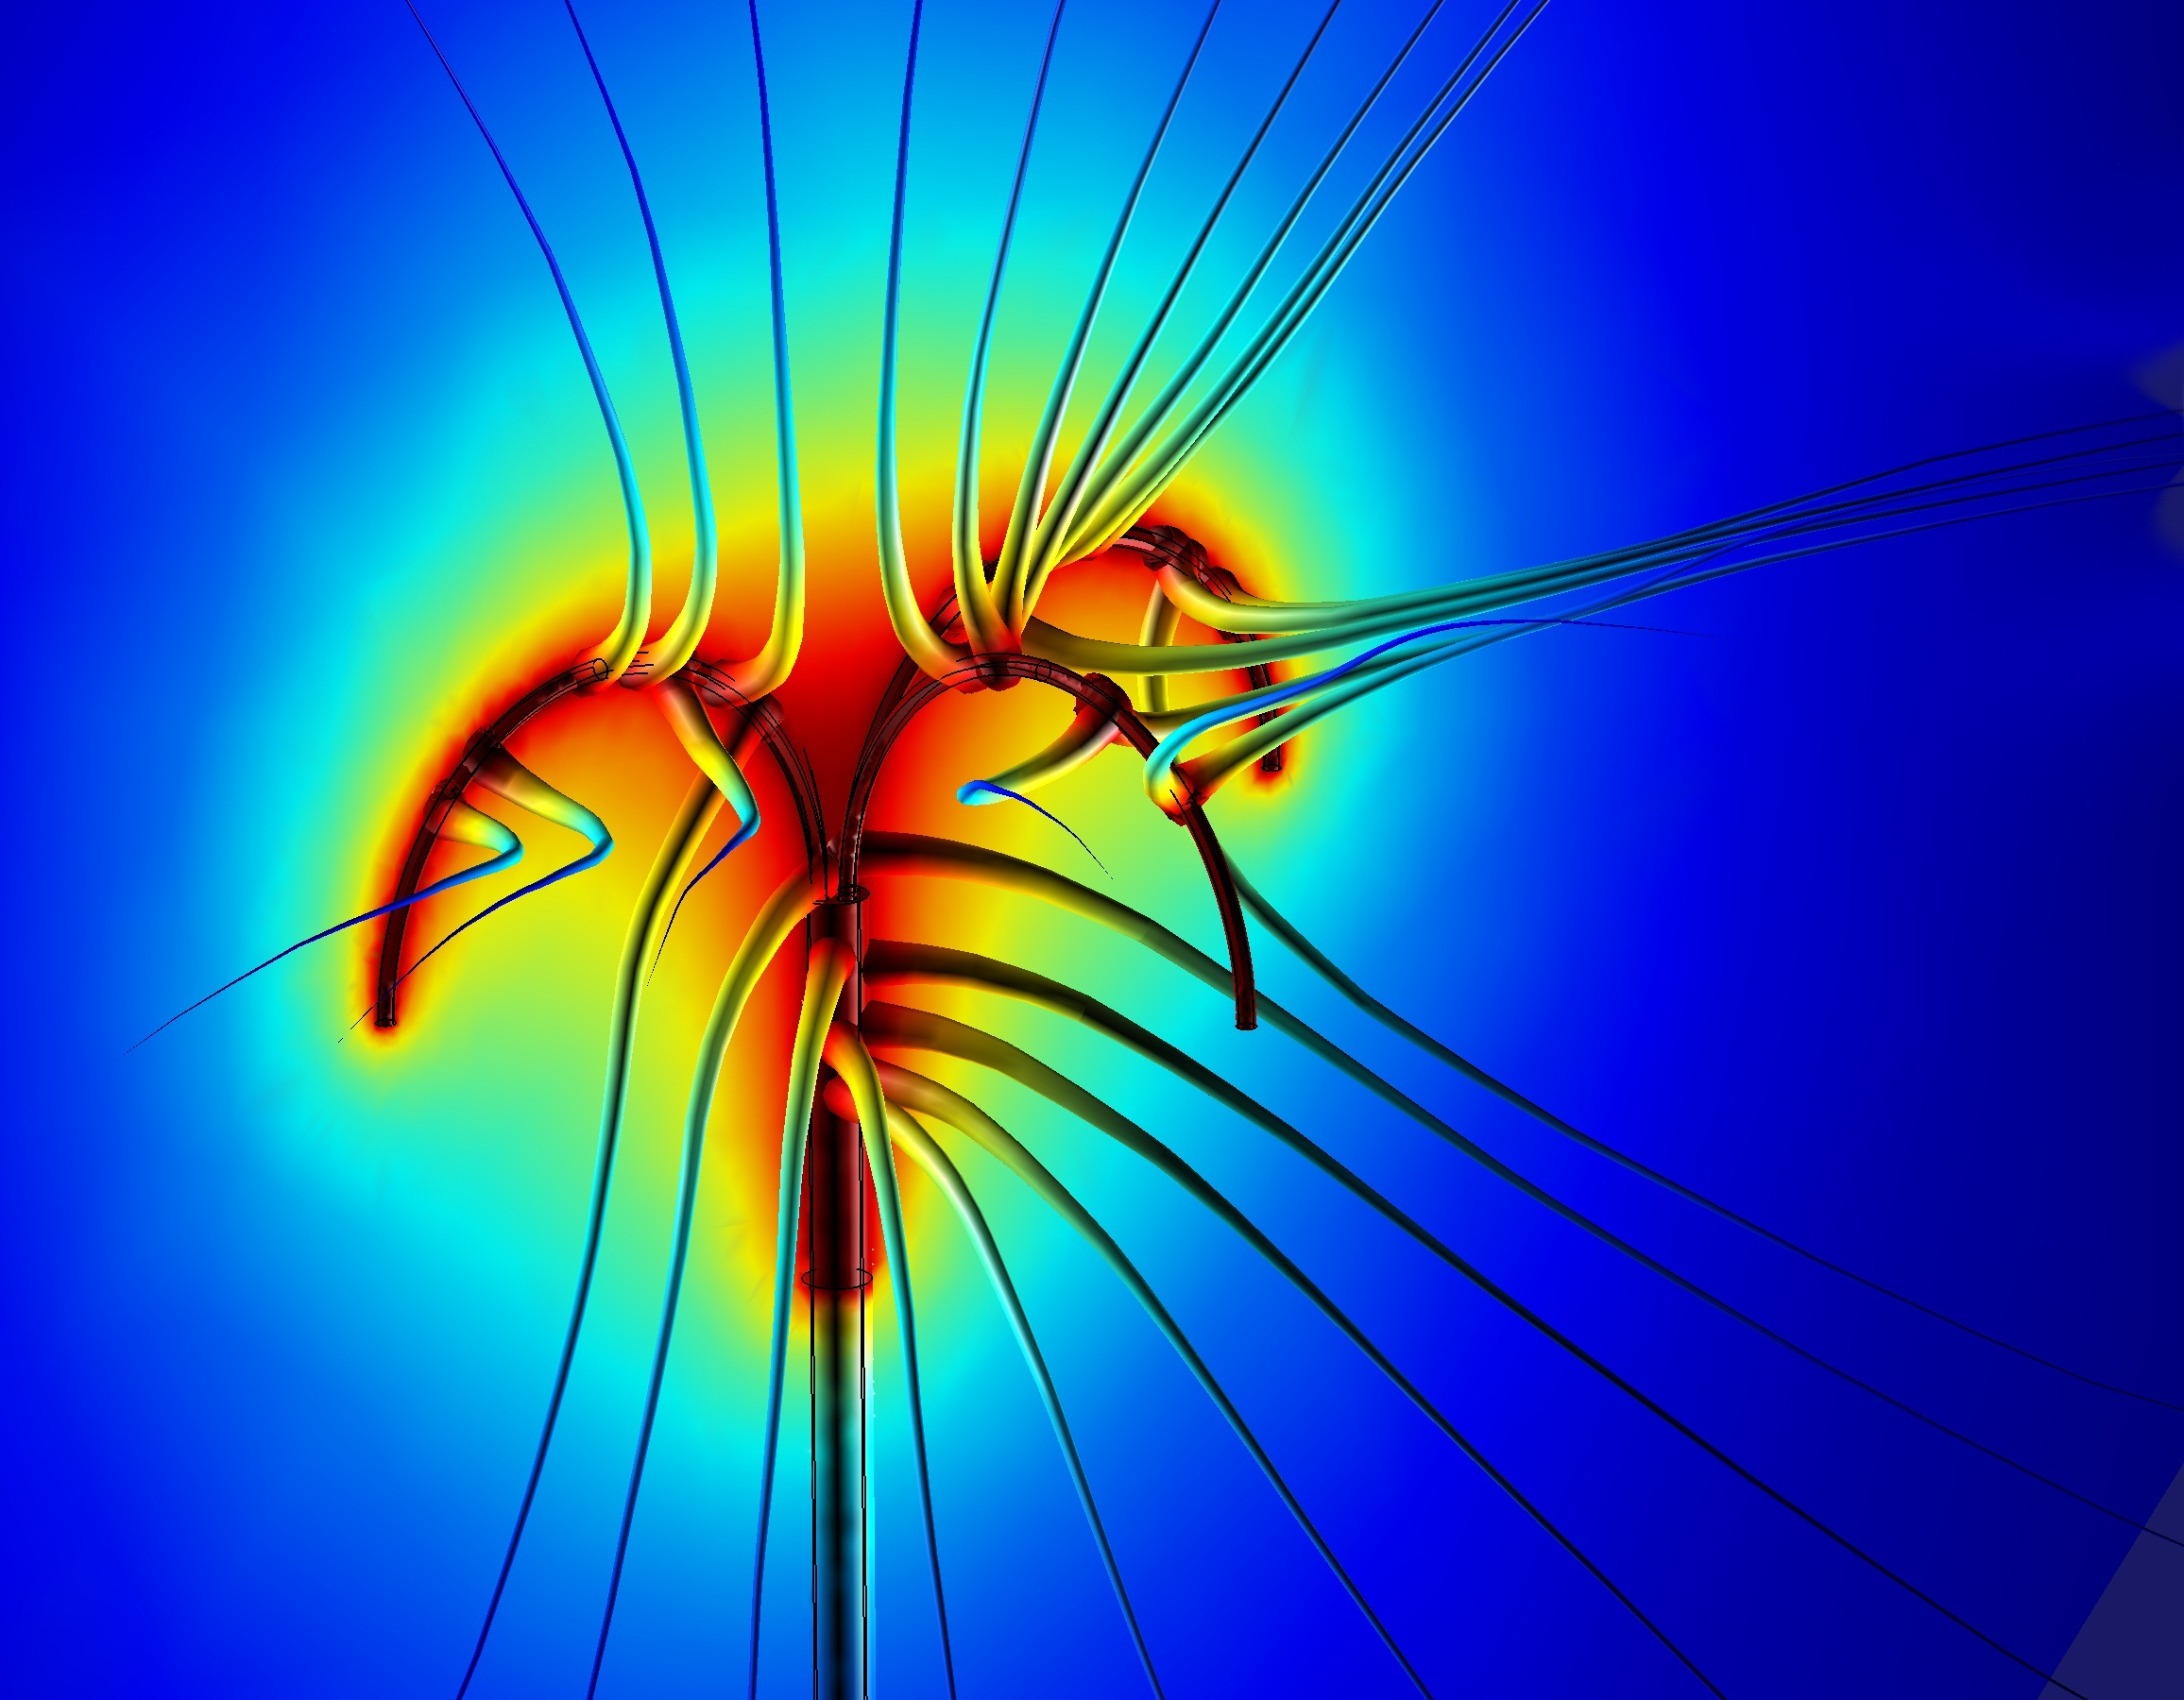 Tumor Ablation, modeled in COMSOL Multiphysics